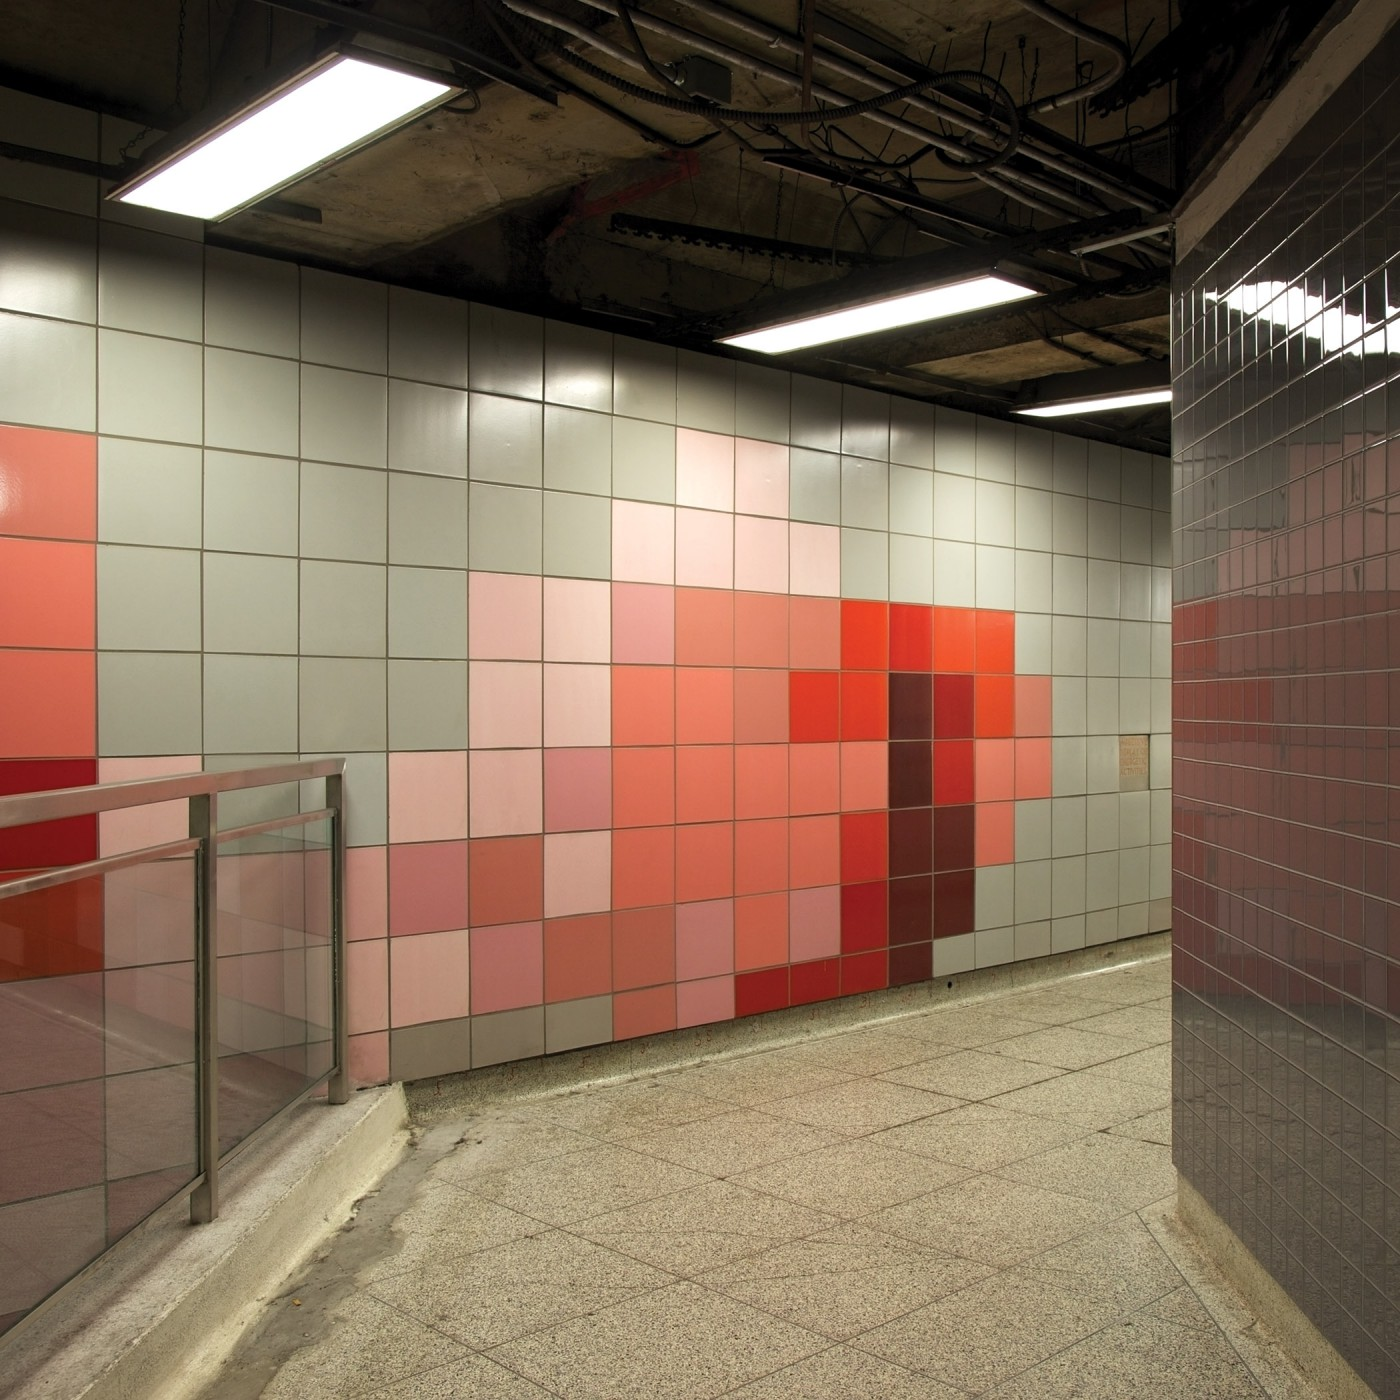 Chris Shepherd, </span><span><em>Dufferin Station Mezzanine Hallway Tiles Toronto</em>, </span><span>2014 Courtesy of Bau-Xi Photo